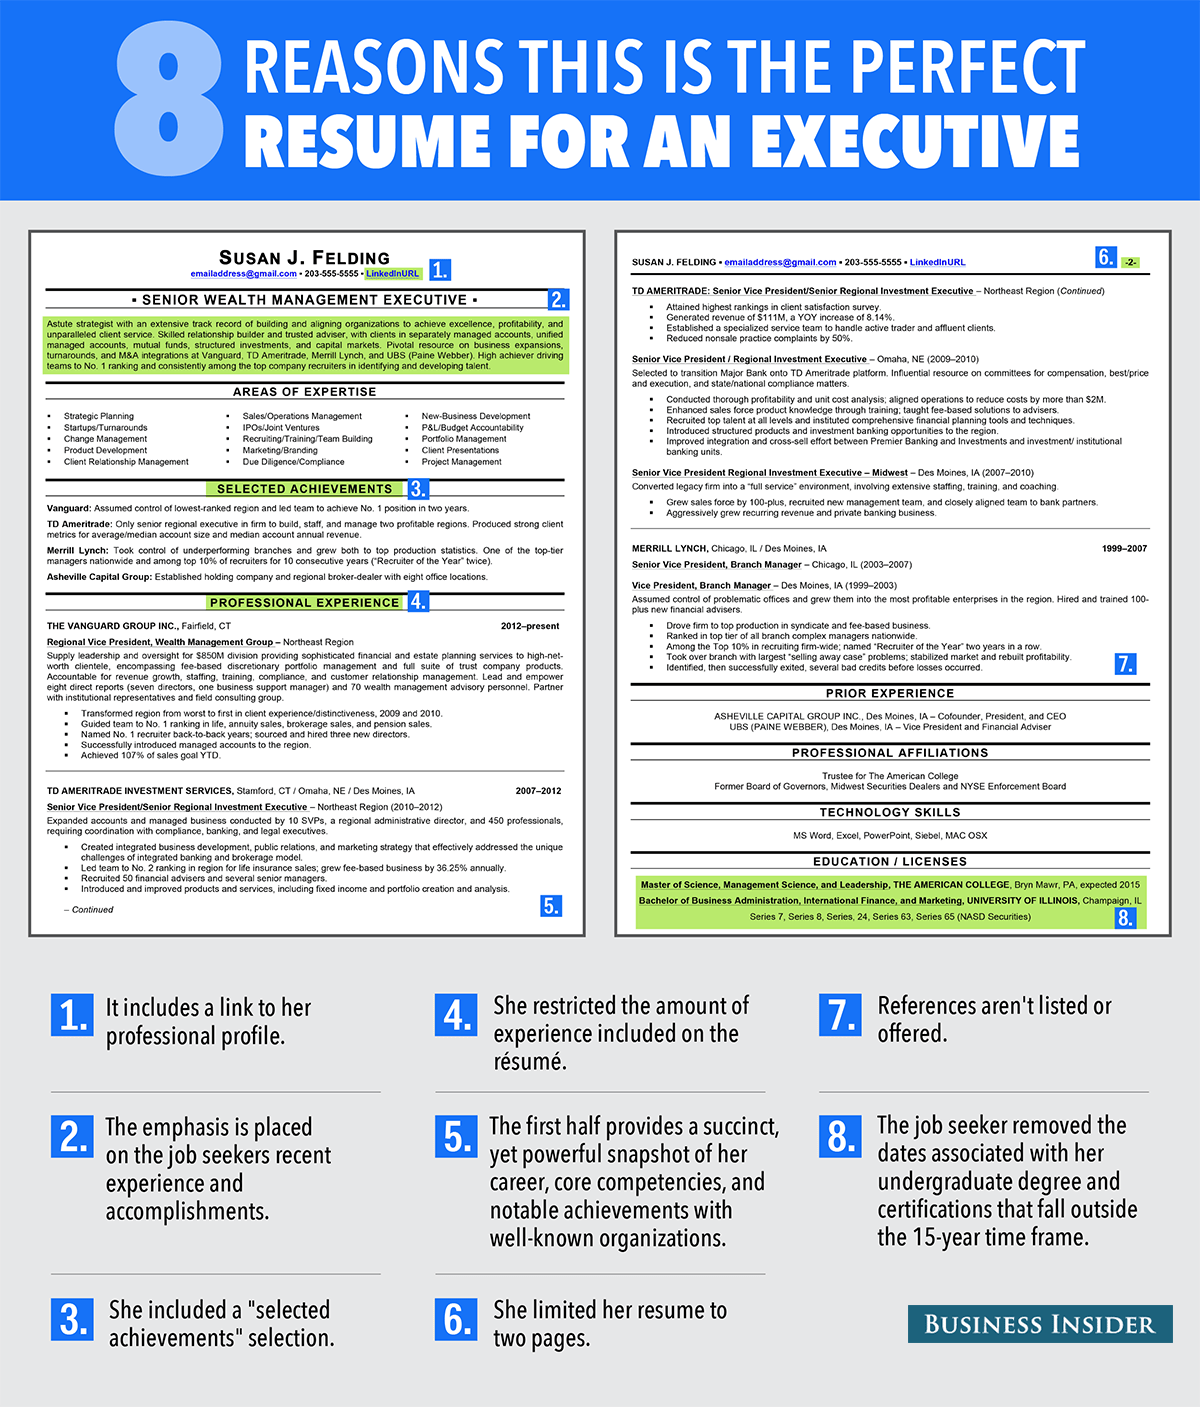 What If I Have No Work Experience For A Resume 8 Reasons This Is An Excellent Resumé For Someone With A